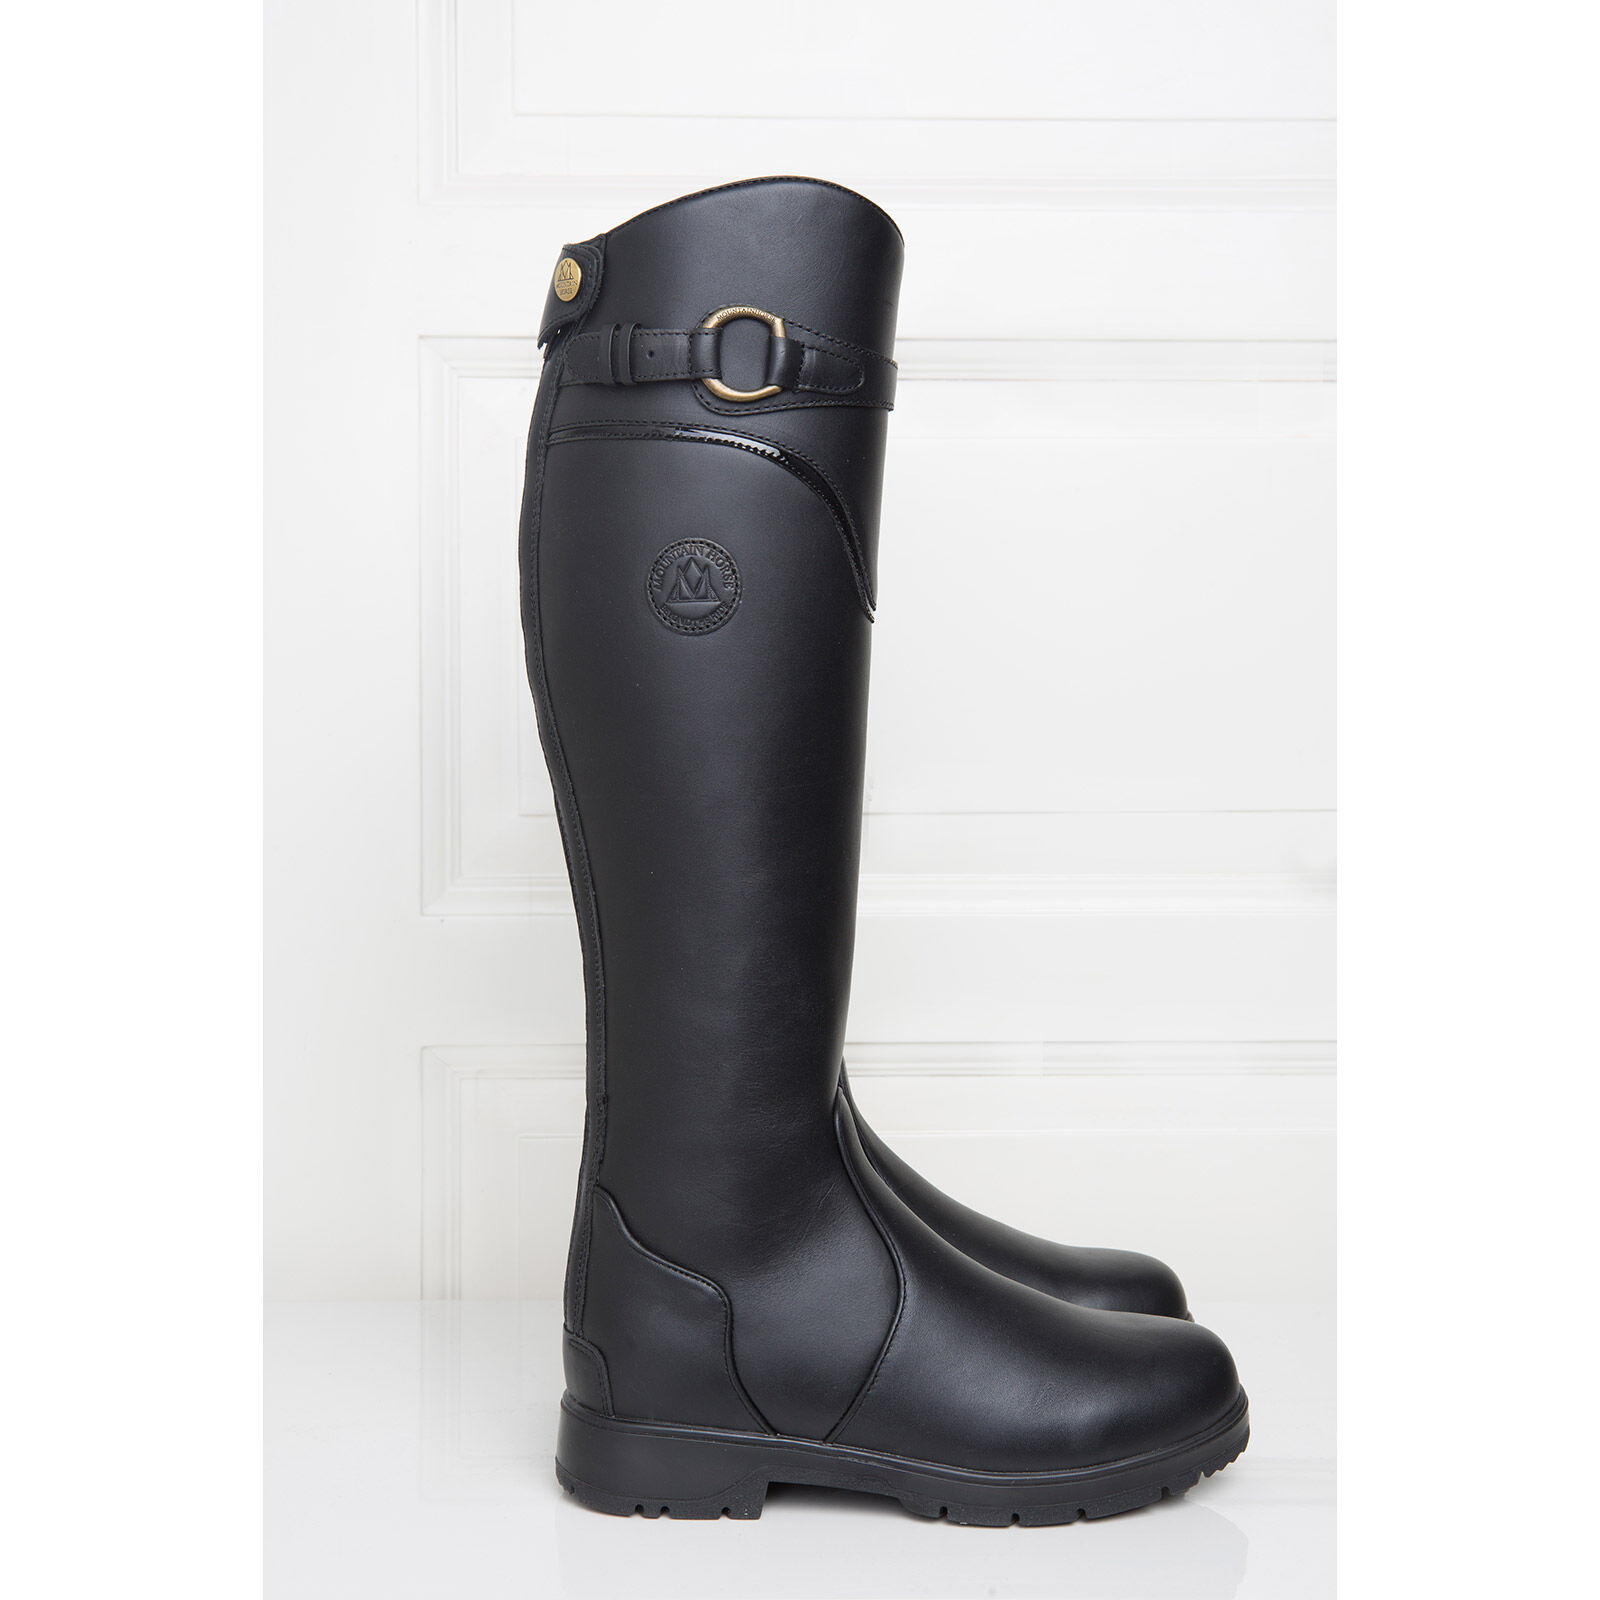 Spring Mountain Stiefel Stiefel Spring River River Mountain Horse Horse Mountain k0wP8XnO